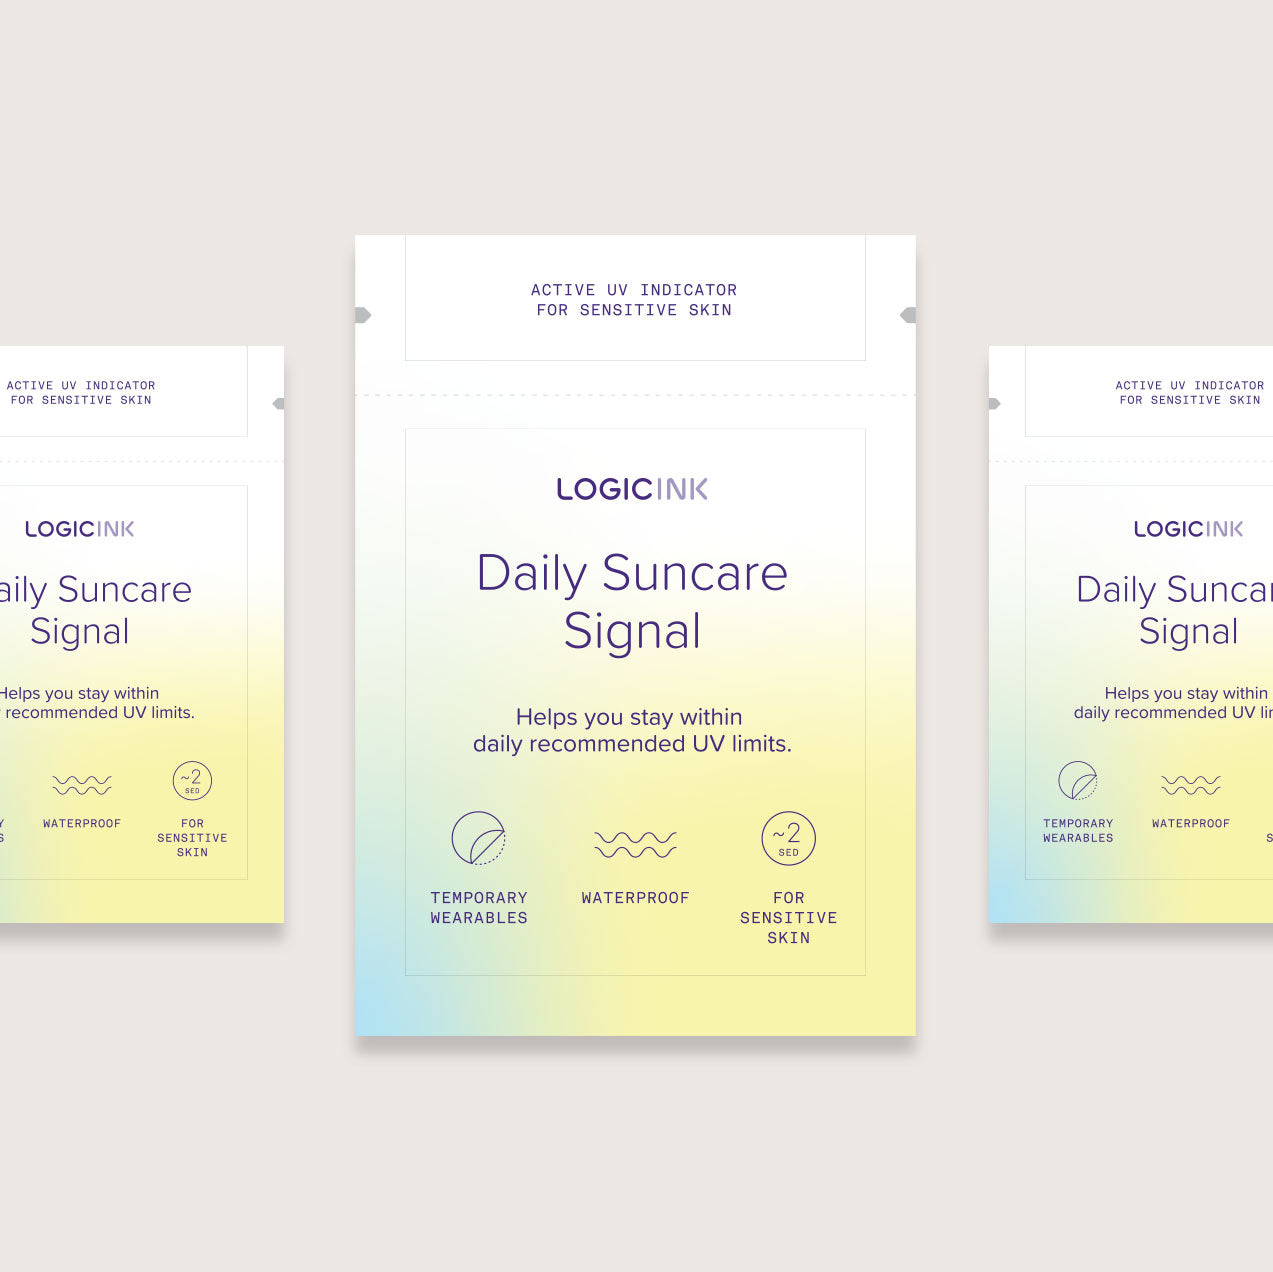 Daily Suncare Signals